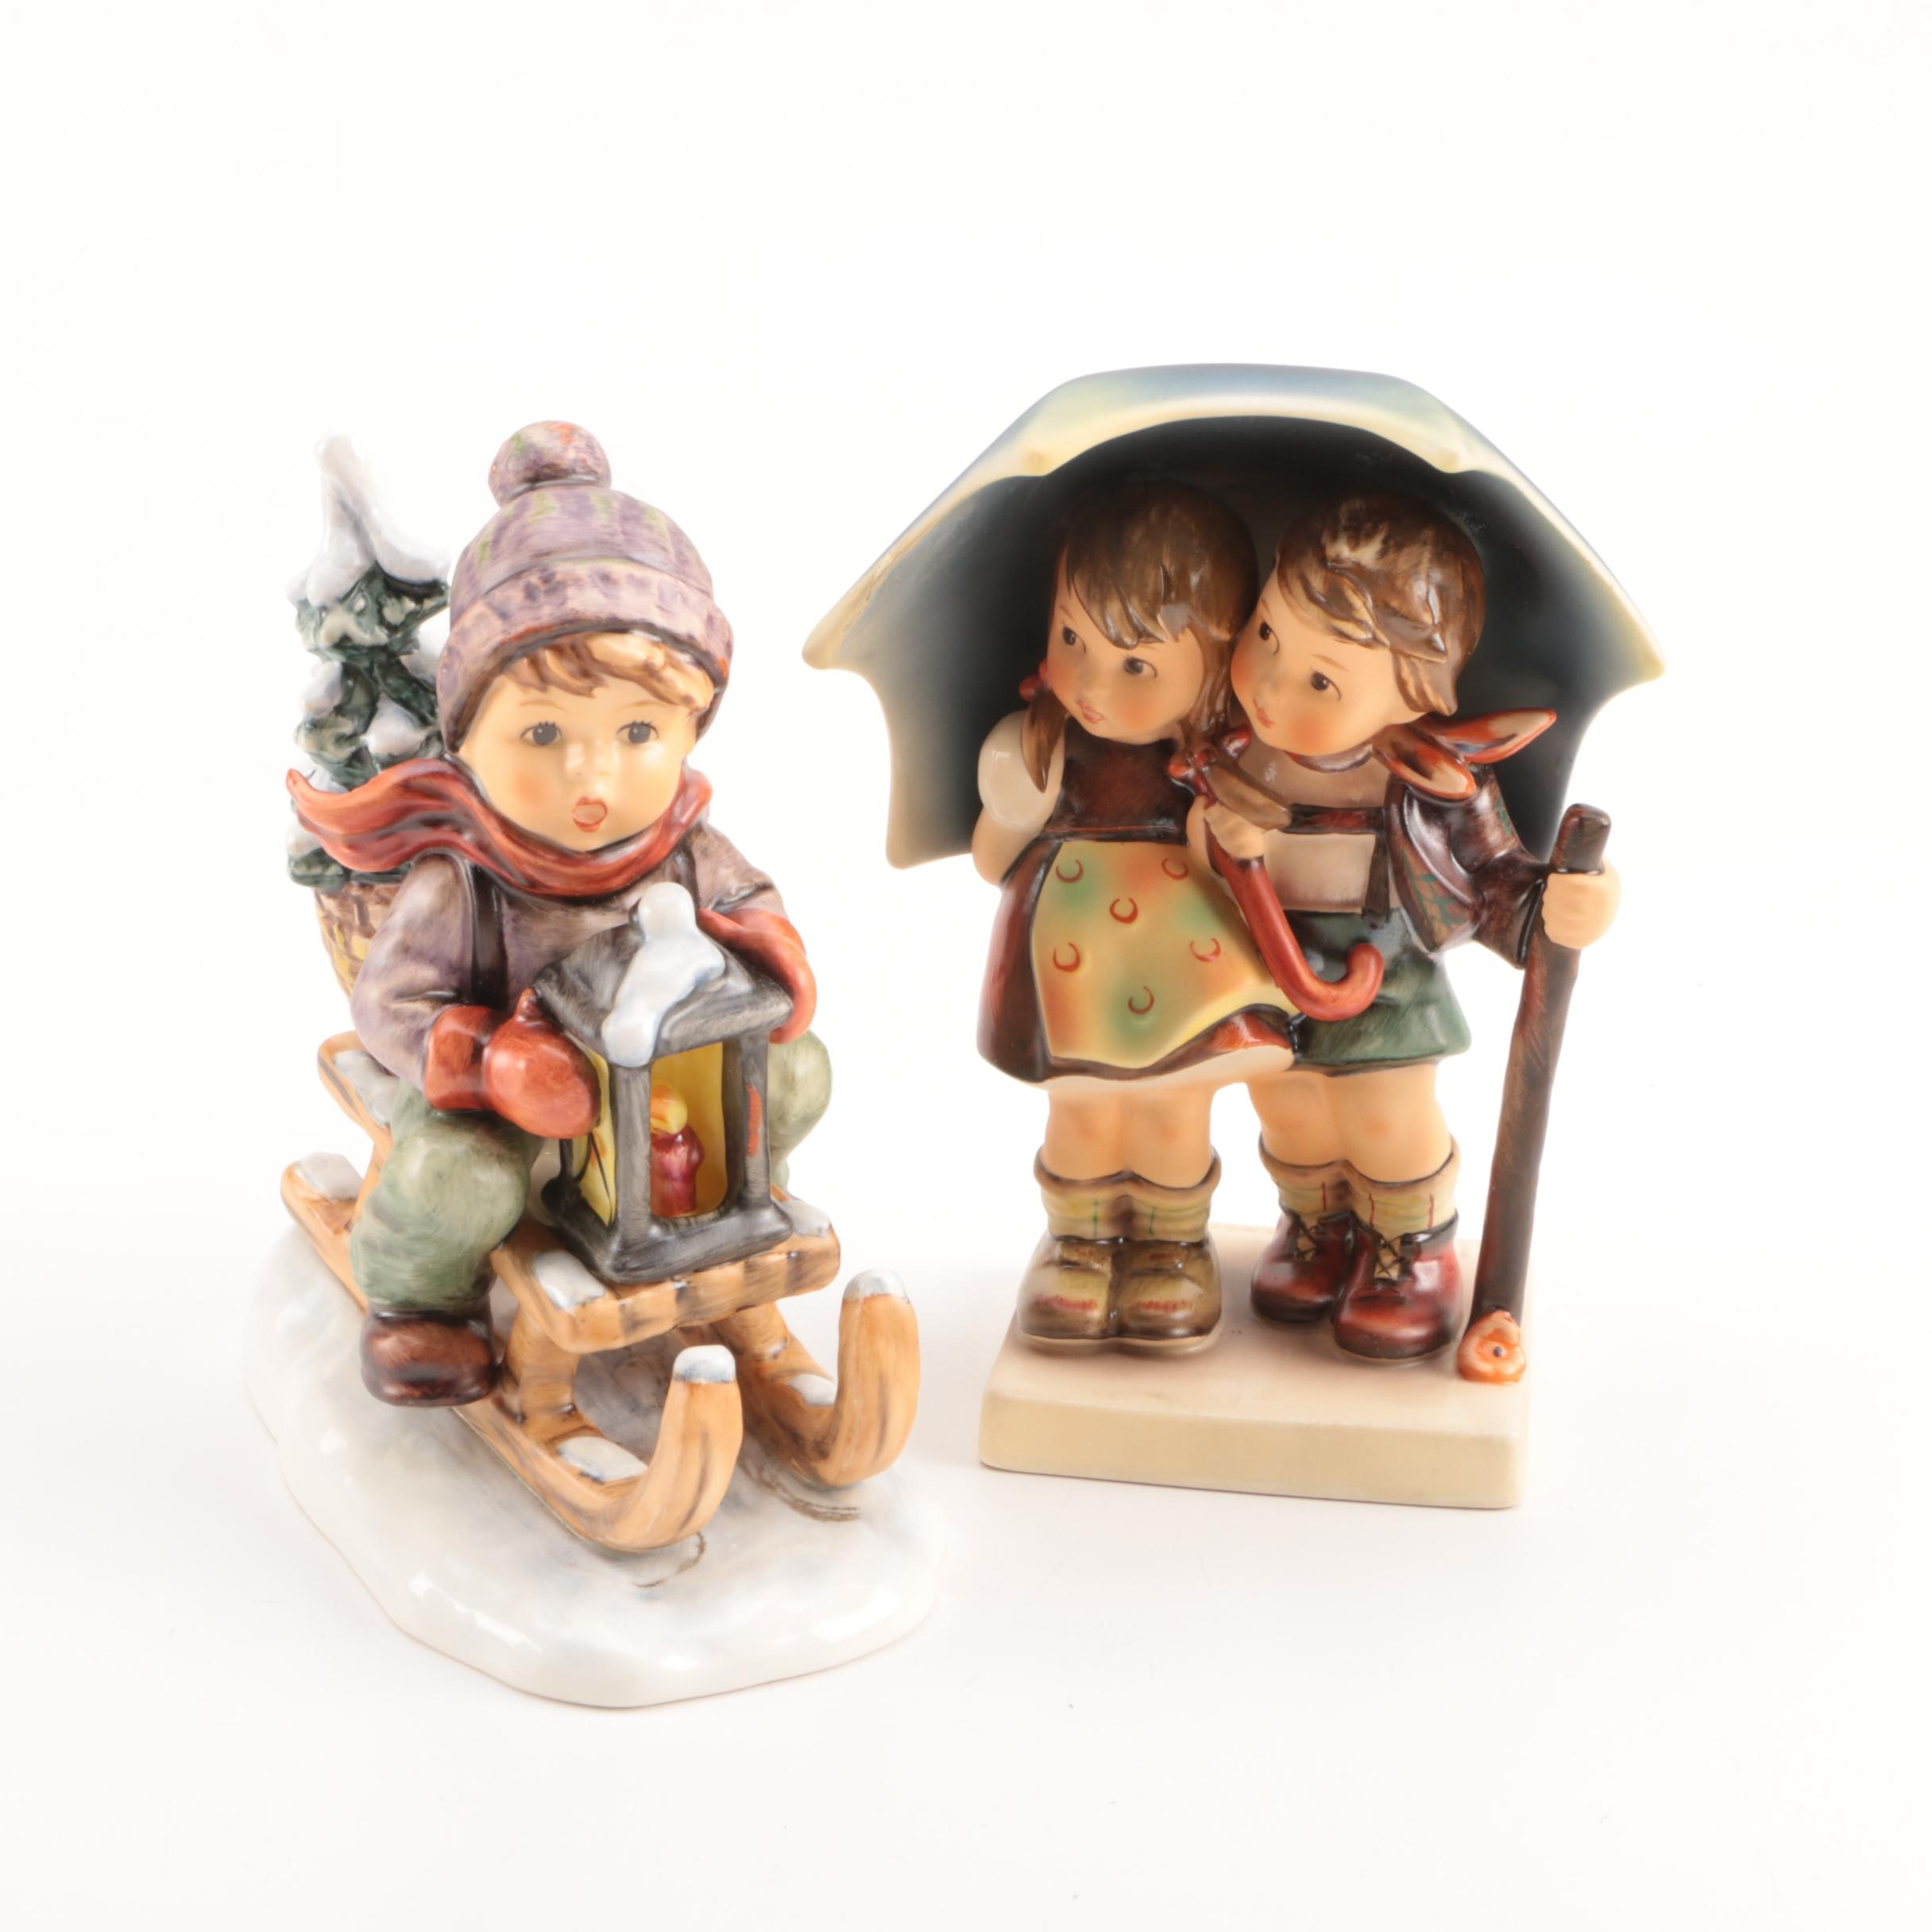 """Hummel """"Stormy Weather"""" and """"Ride Into Christmas"""" Figurines"""